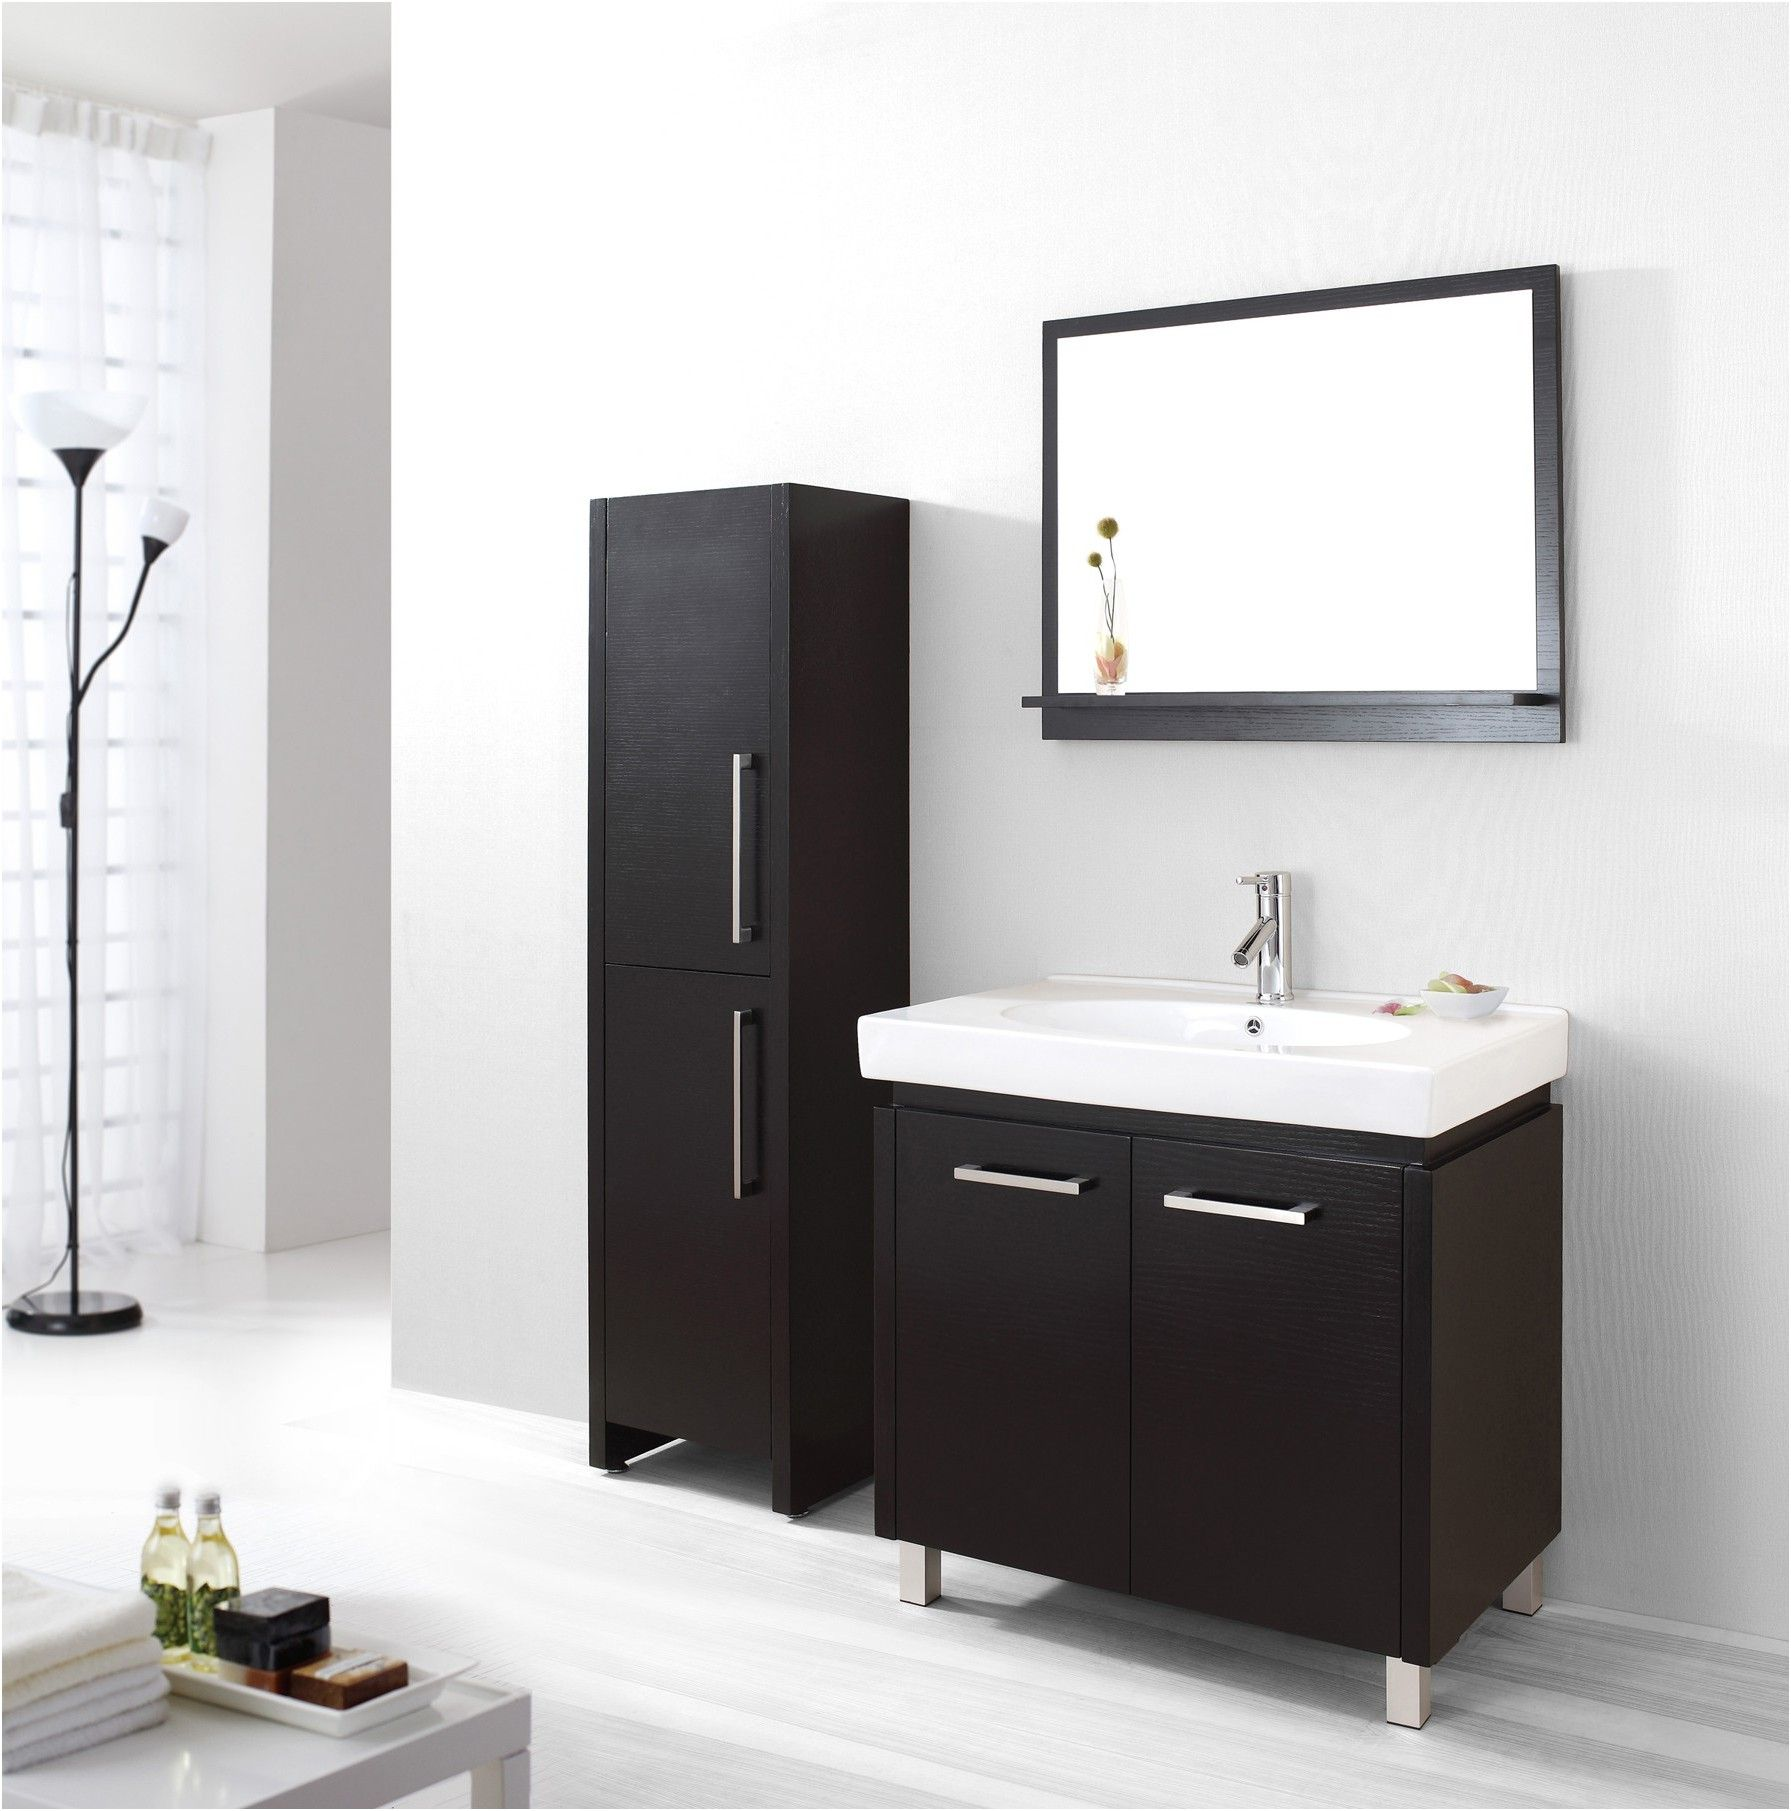 bathroom side cabinets. Bathroom Cabinets Front Espresso Wall Cabinet From Side